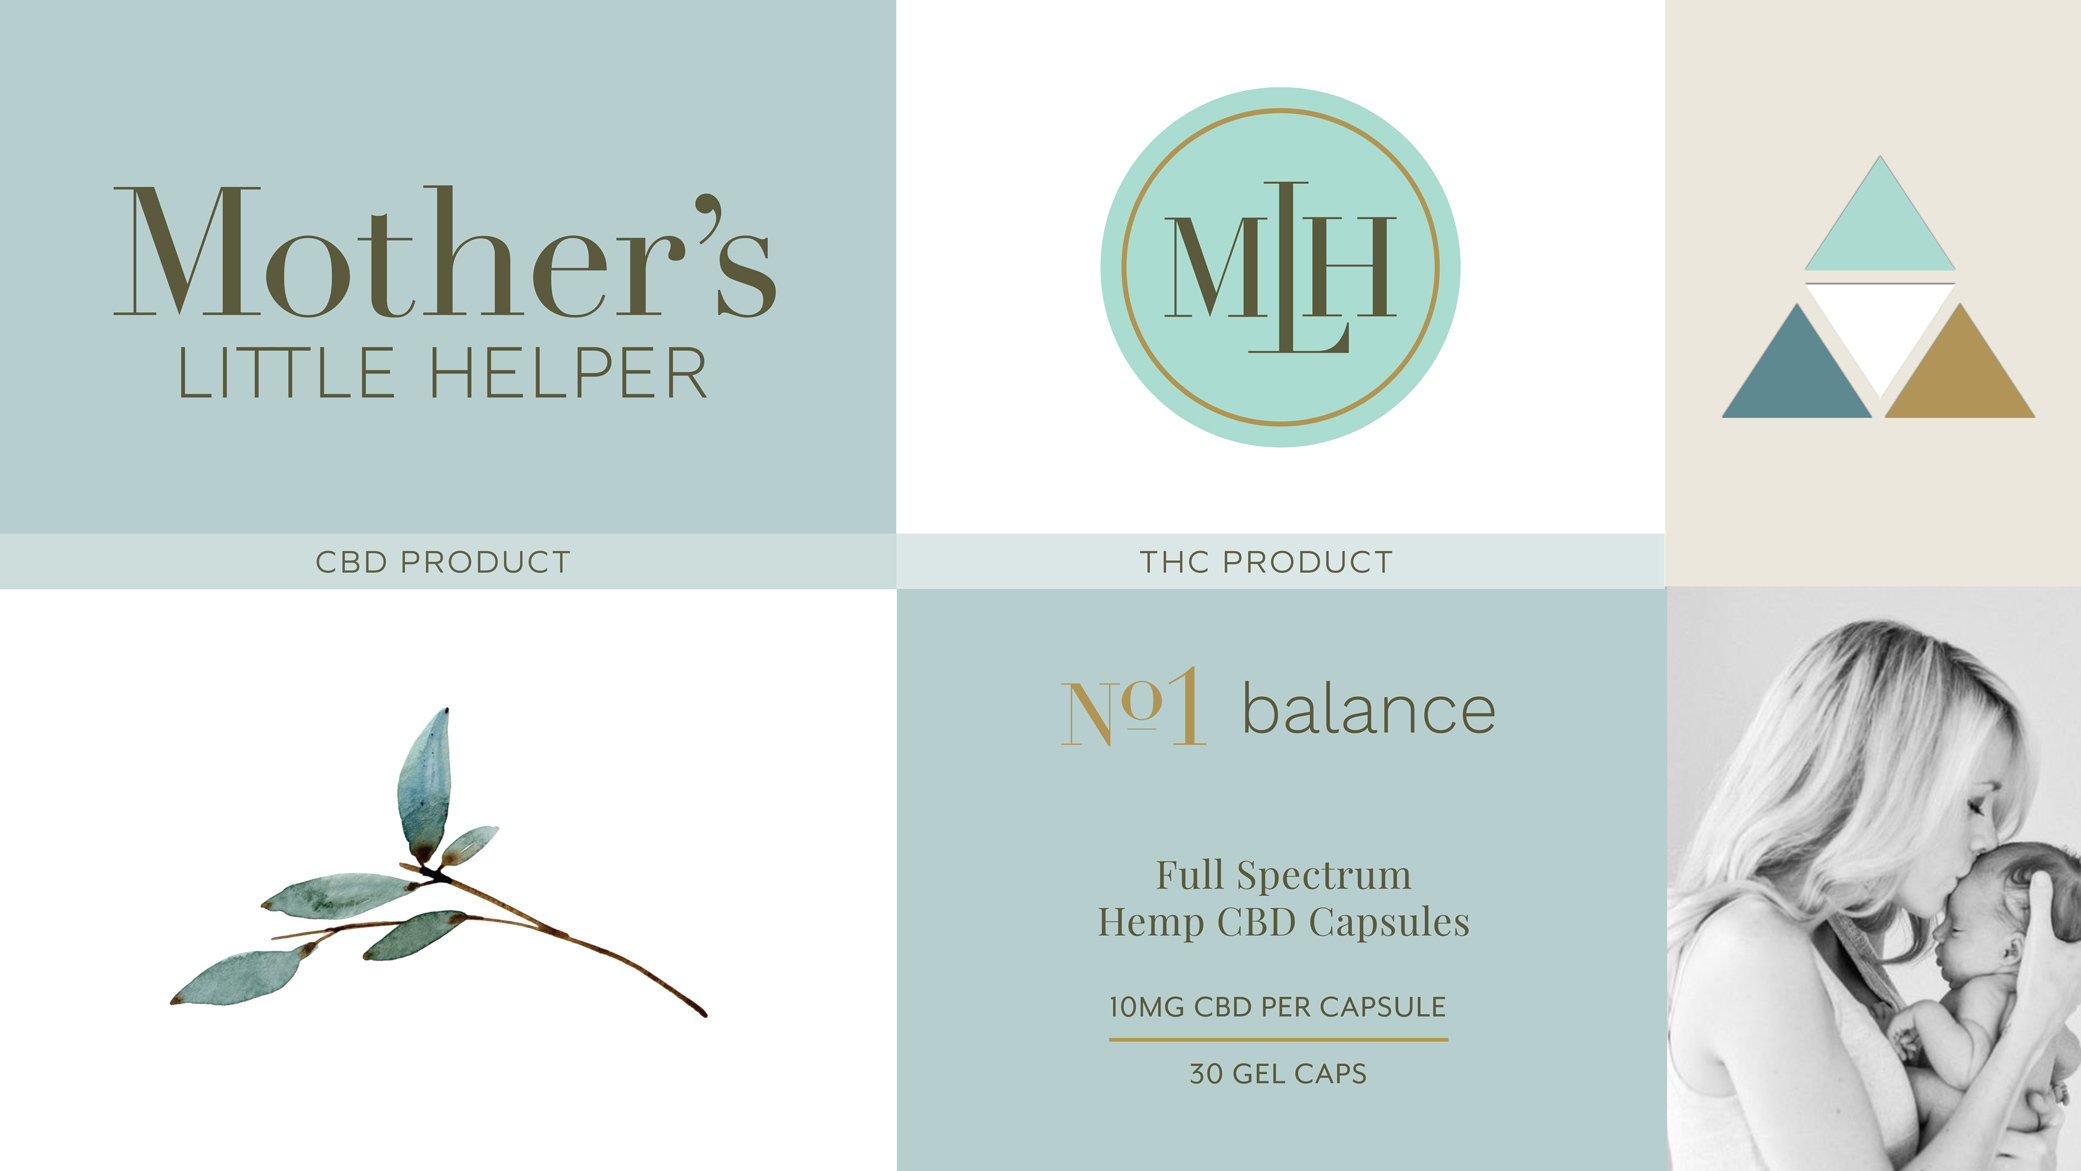 Mother's Little Helper design inspiration in soft tones of blue and brown with a botanical, clincal direction for the brand.